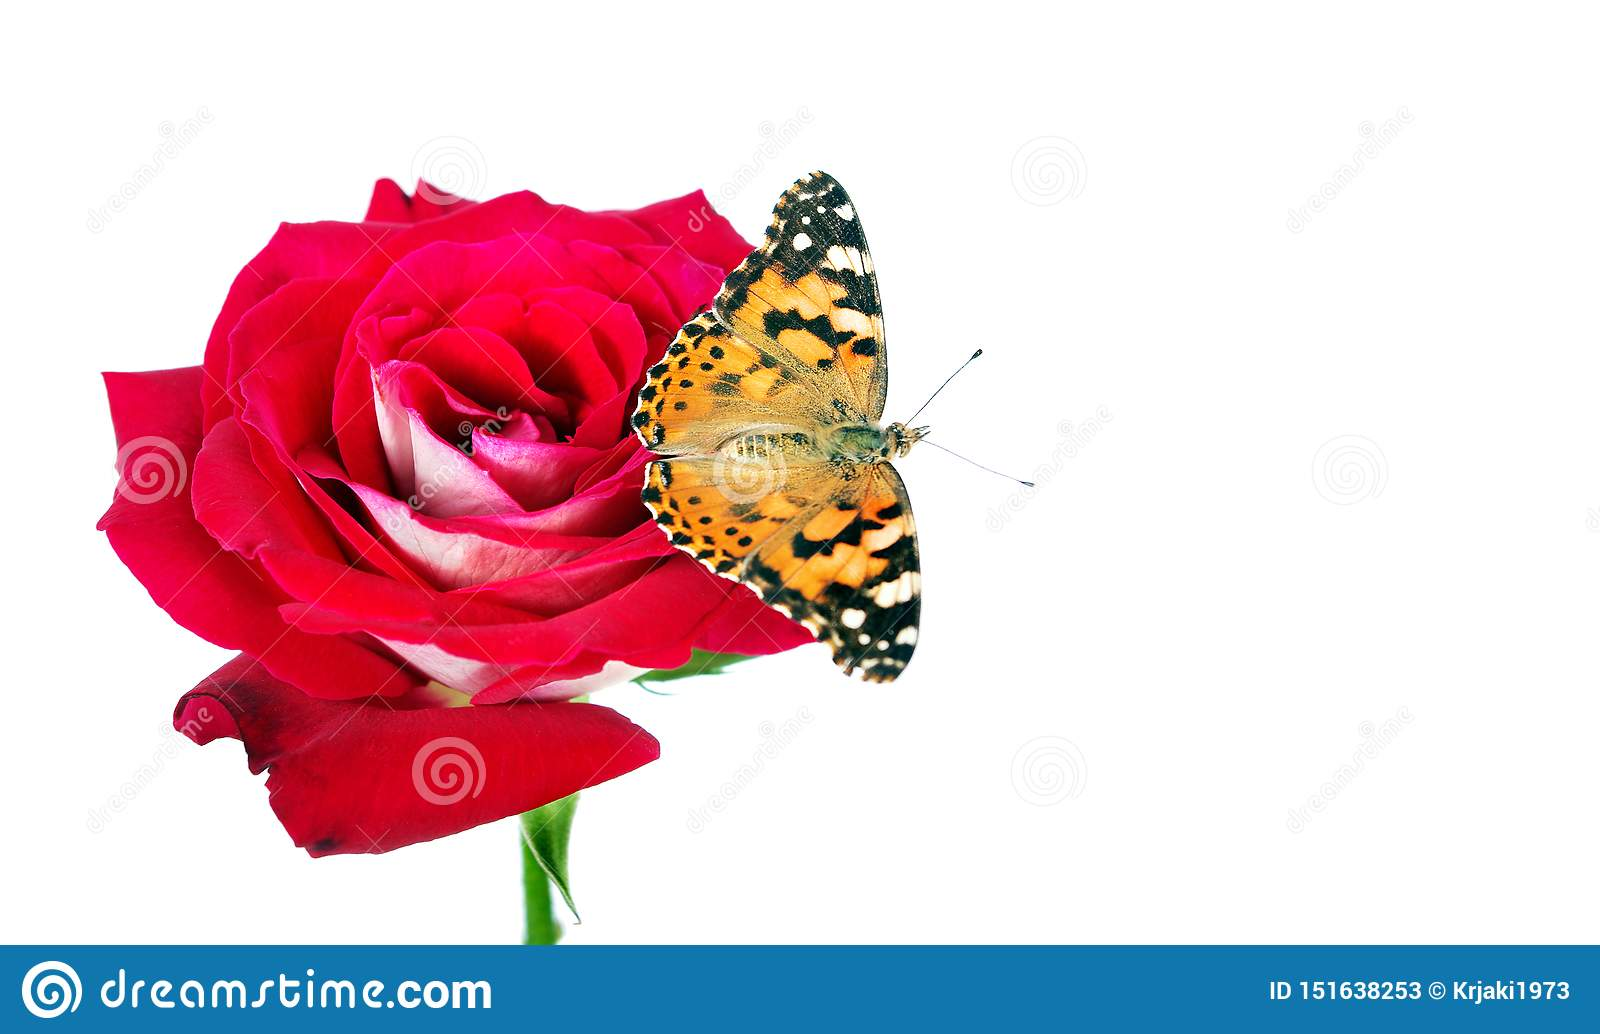 Butterfly on a flower. beautiful butterfly painted lady on flower isolated on a white. copy spaces. rose and butterfly